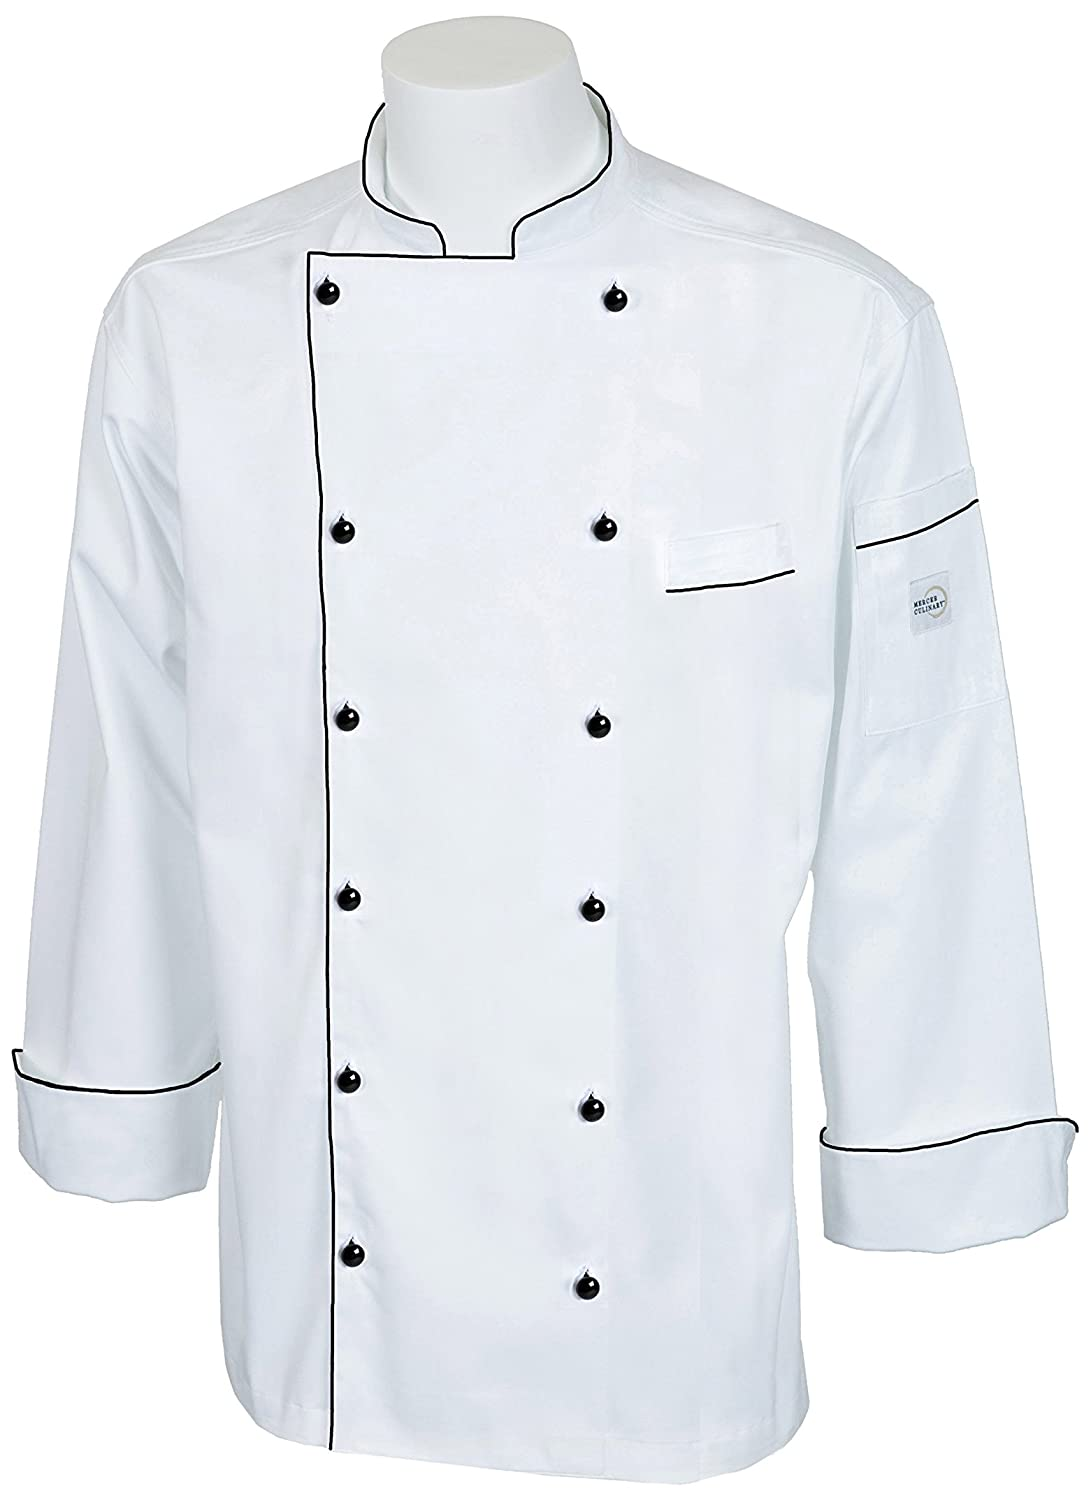 Mercer Culinary M62030WH3X Renaissance Men's Traditional Neck Chef Jacket, 3X-Large, White